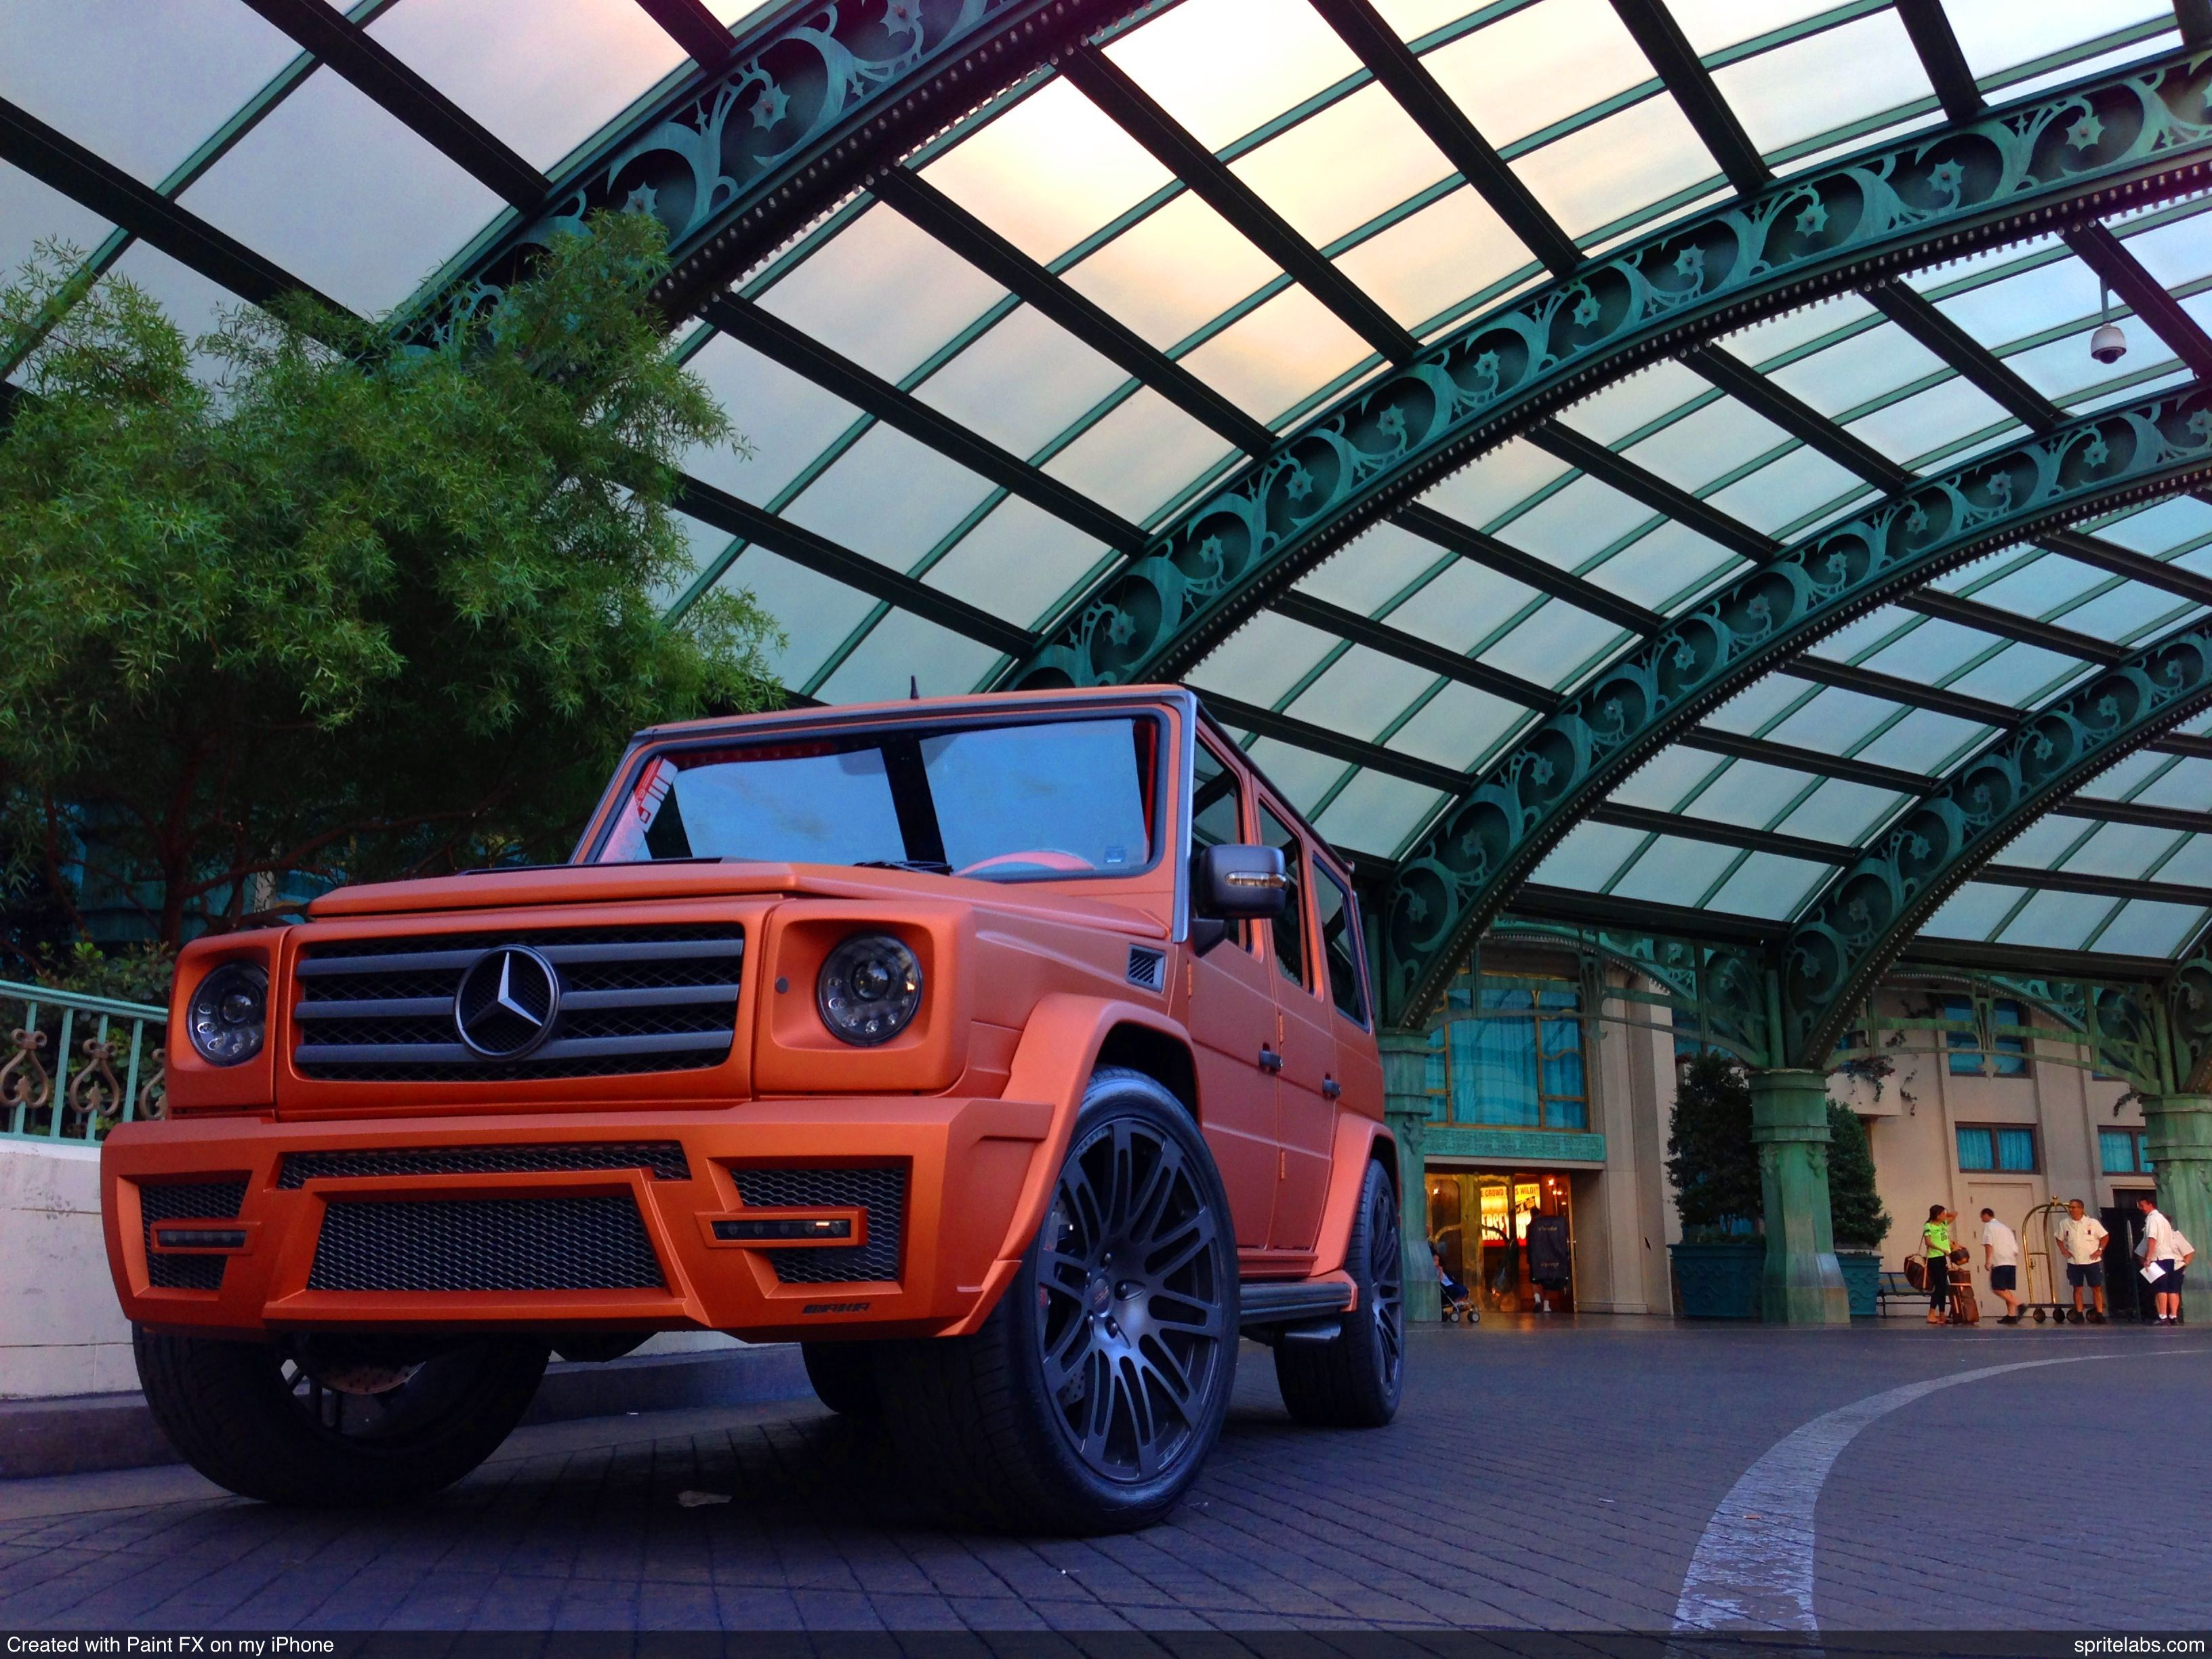 AKA Eurosport Copper Edition G55 Mercedes Benz AMG at